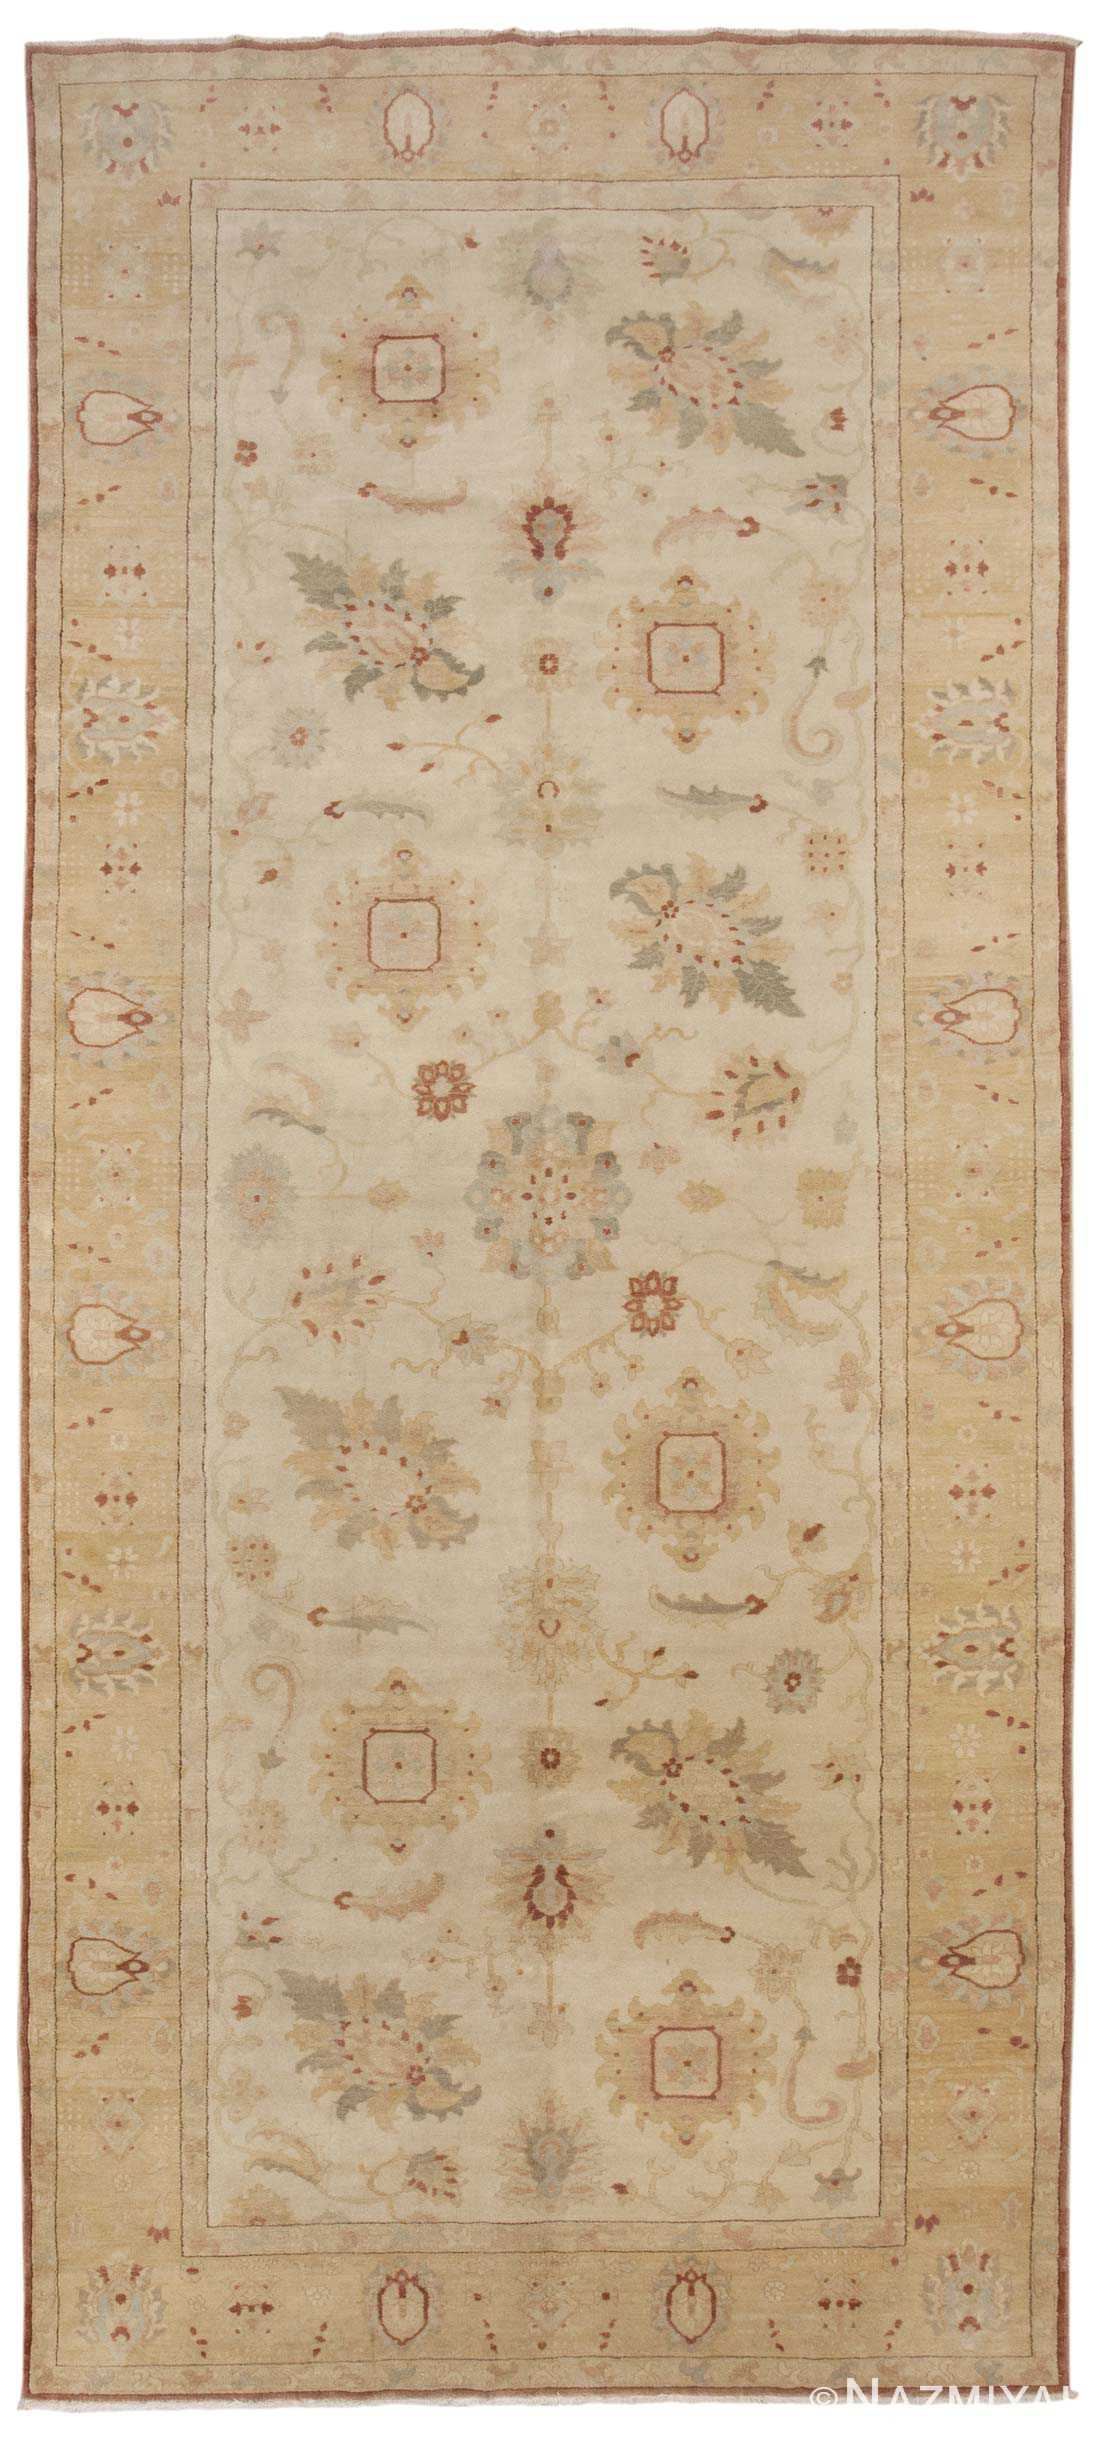 Sultanabad Rug 44684 Detail/Large View